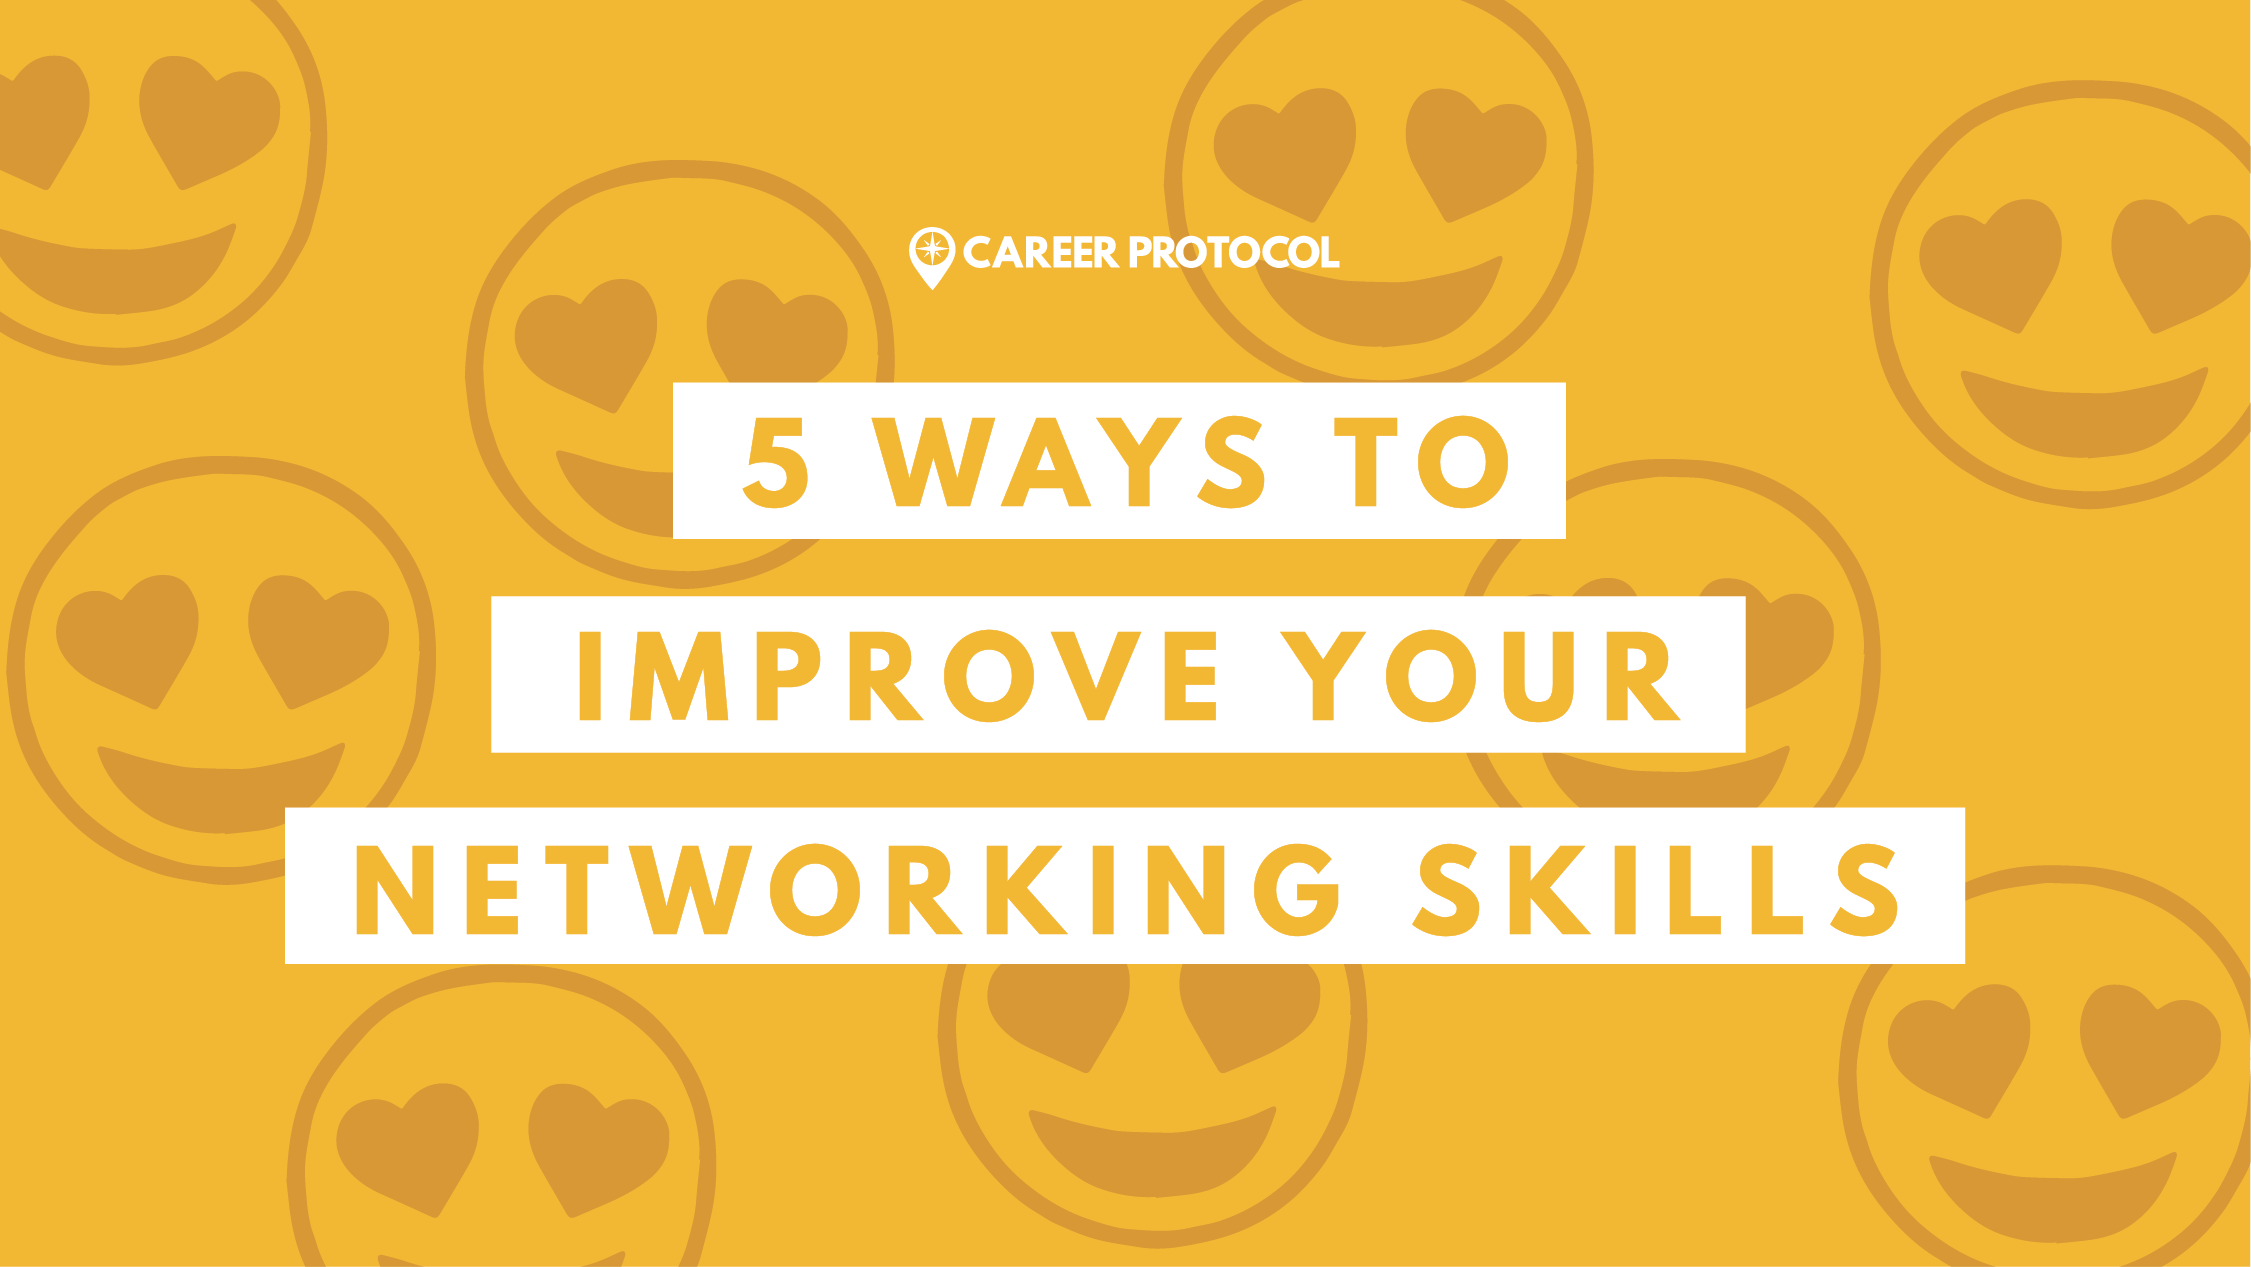 5 Easy Ways to Improve Your Professional Networking Skills